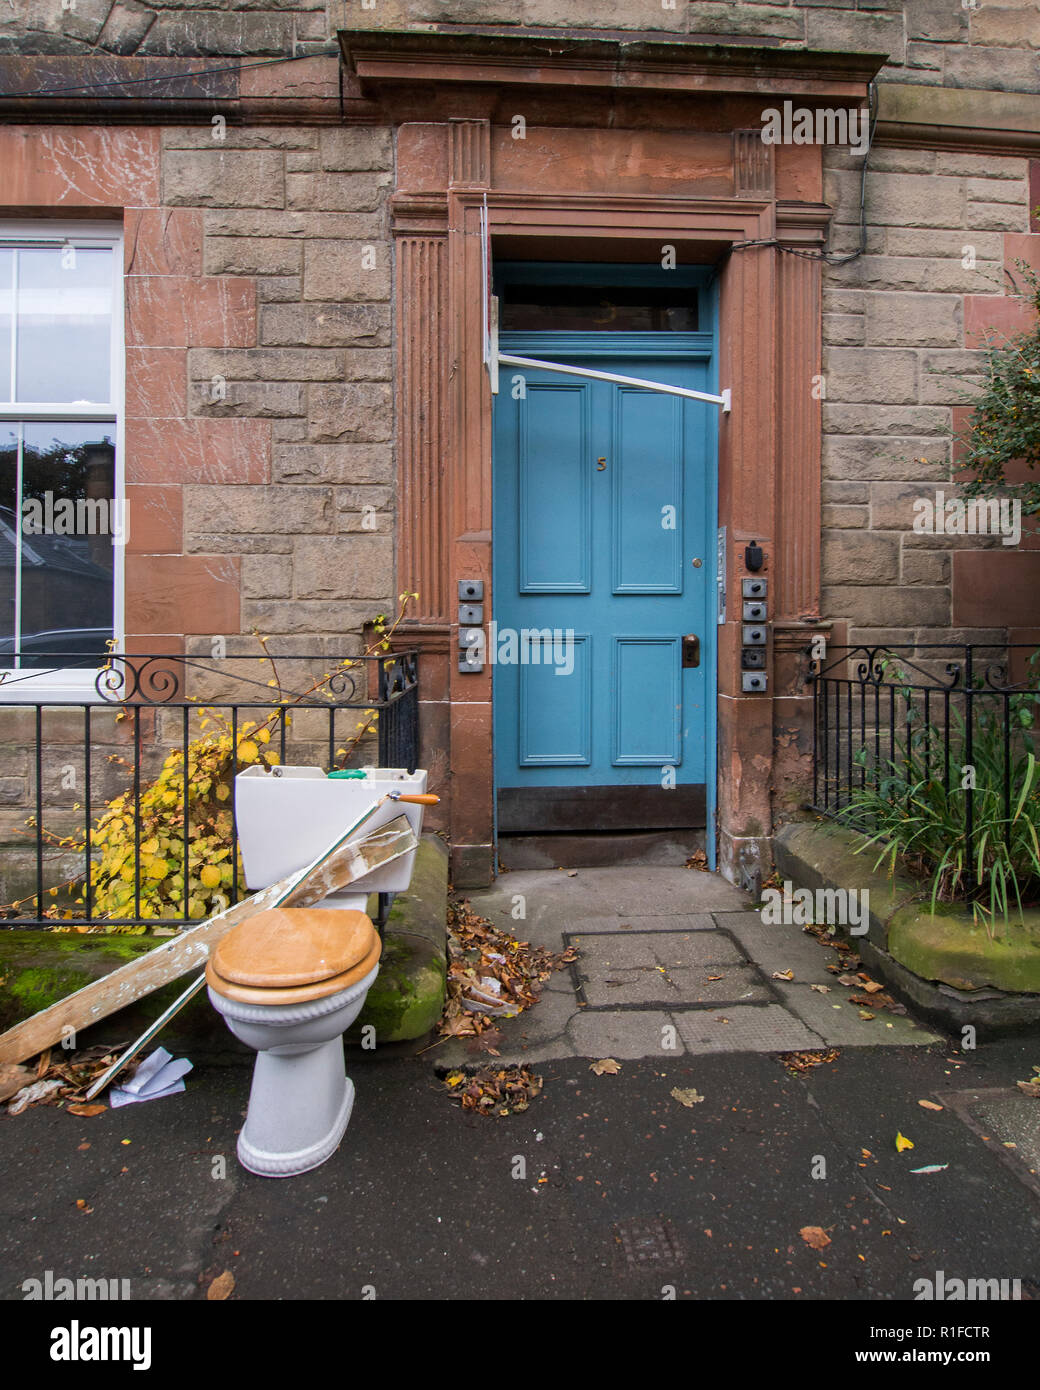 EDINBURGH, SCOTLAND - NOVEMBER 10th 2018: A toilet being left outside. Hopefully for the bin men to collect. Stock Photo